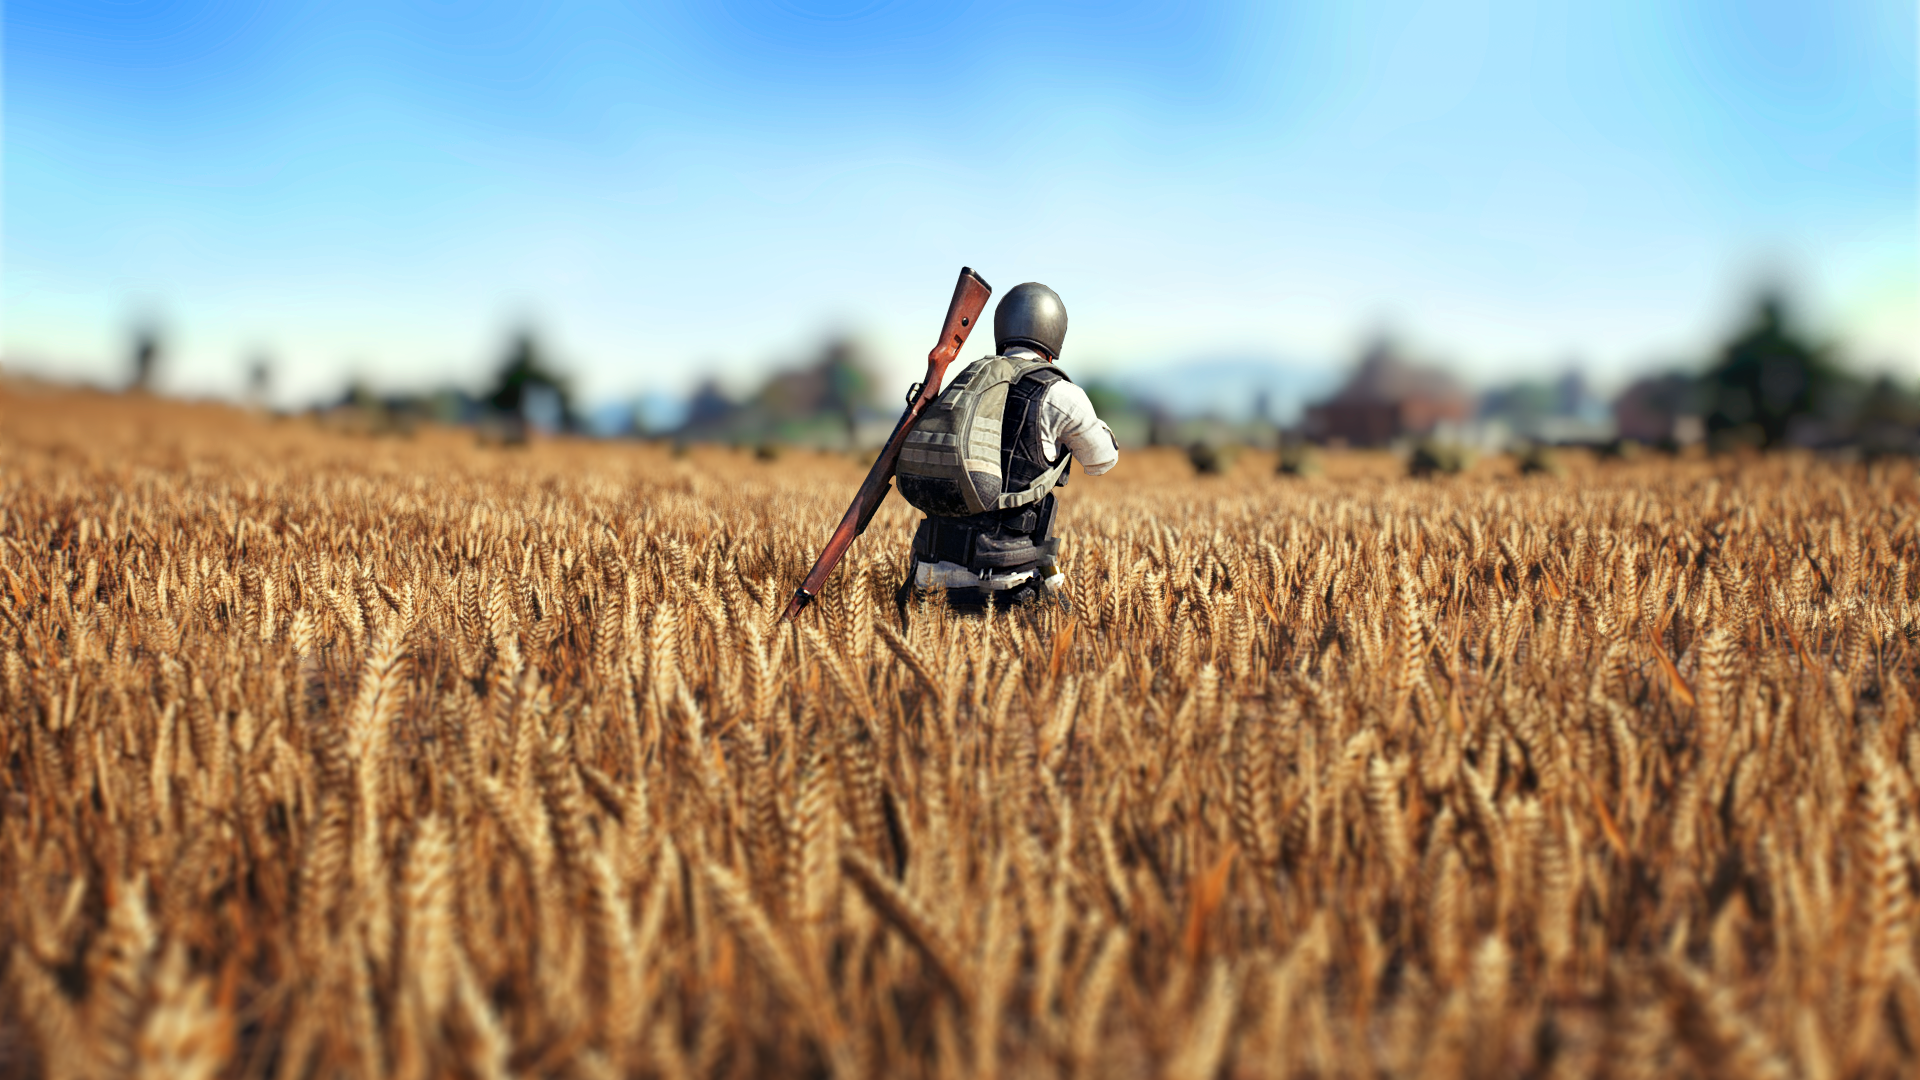 Pubg Wallpaper High Quality: Pubg Wallpapers Photo ~ Click Wallpapers